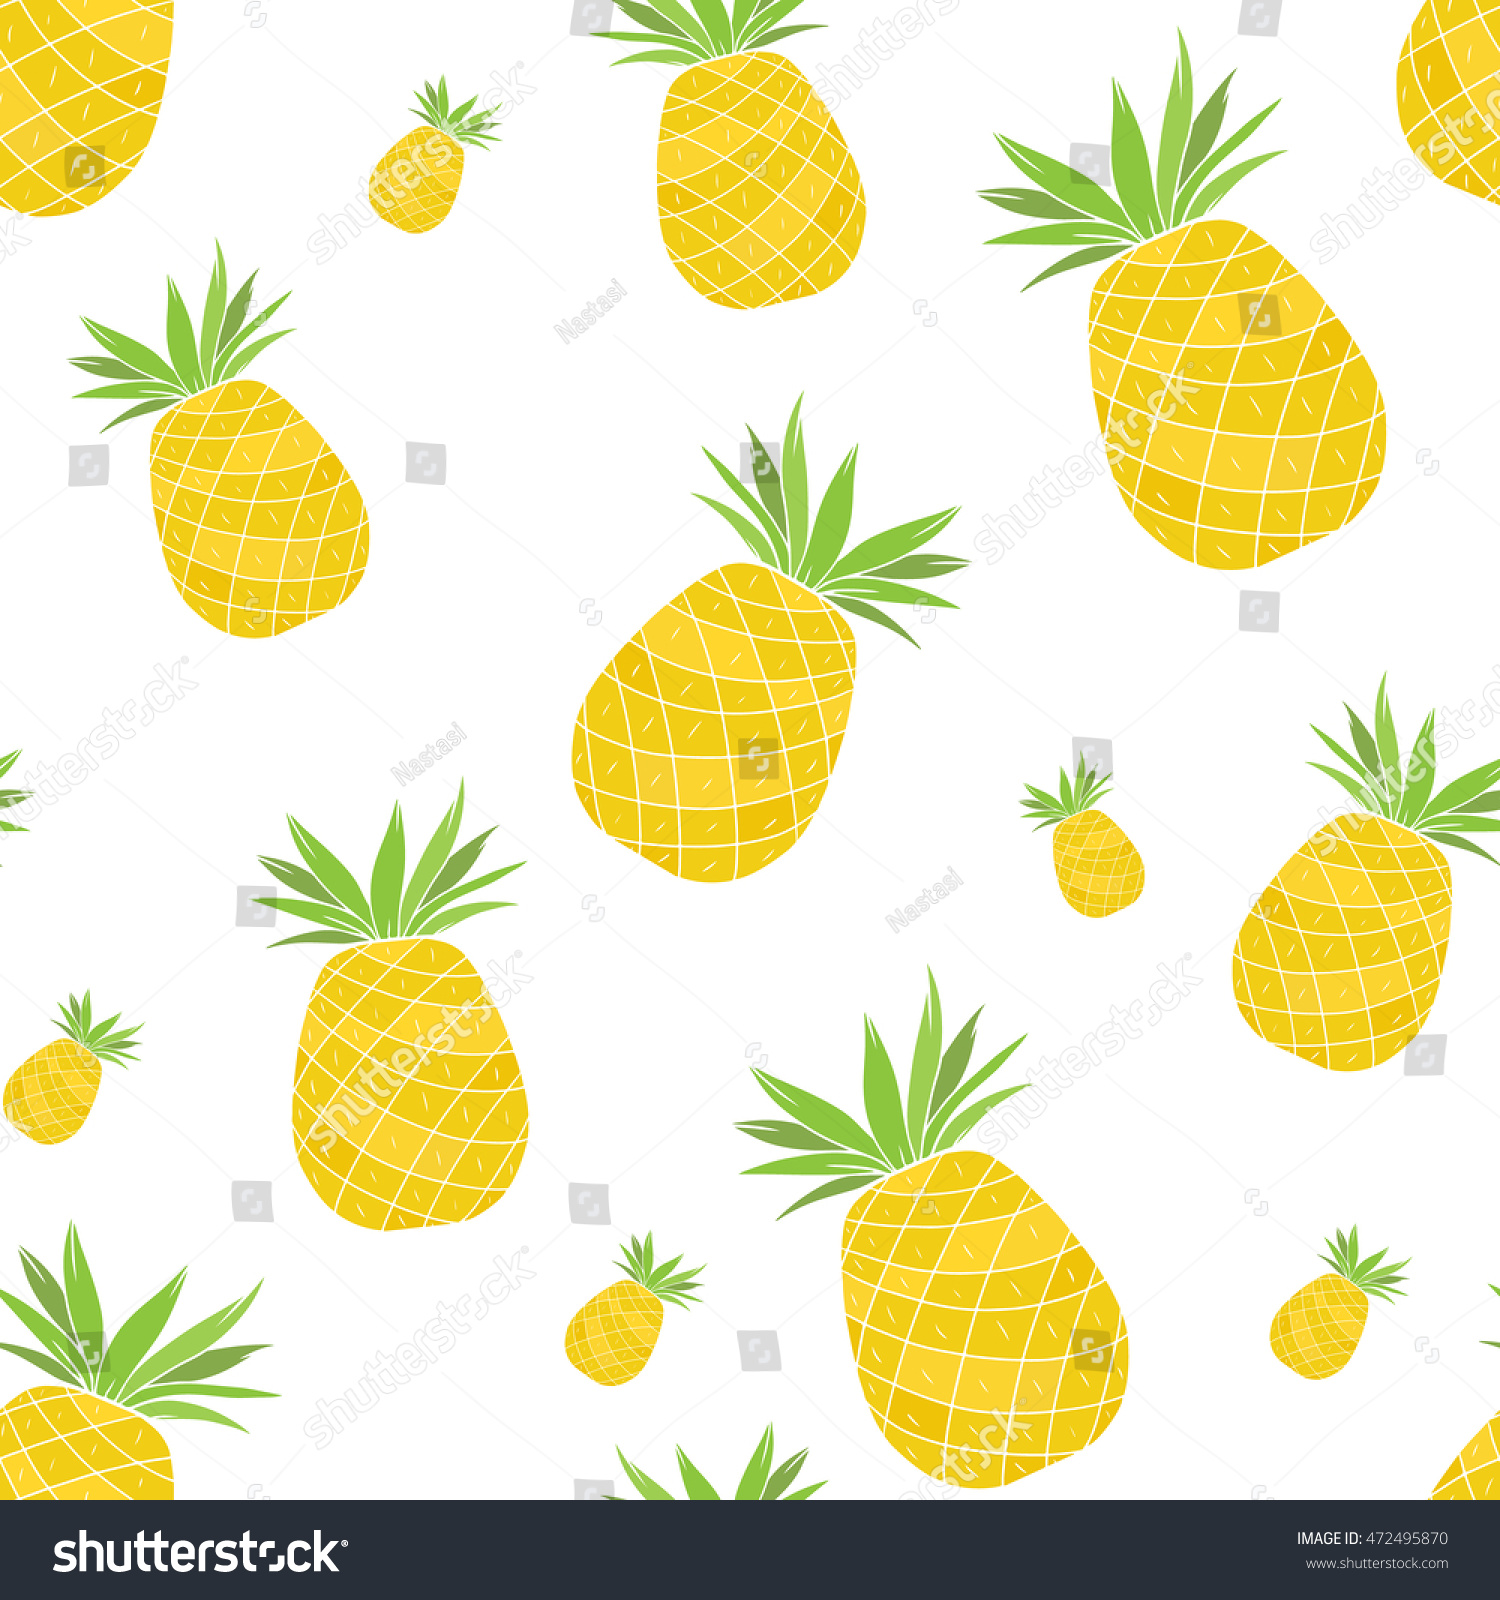 Pineapple Seamless Pattern White Background Kitchen Stock Vector ...